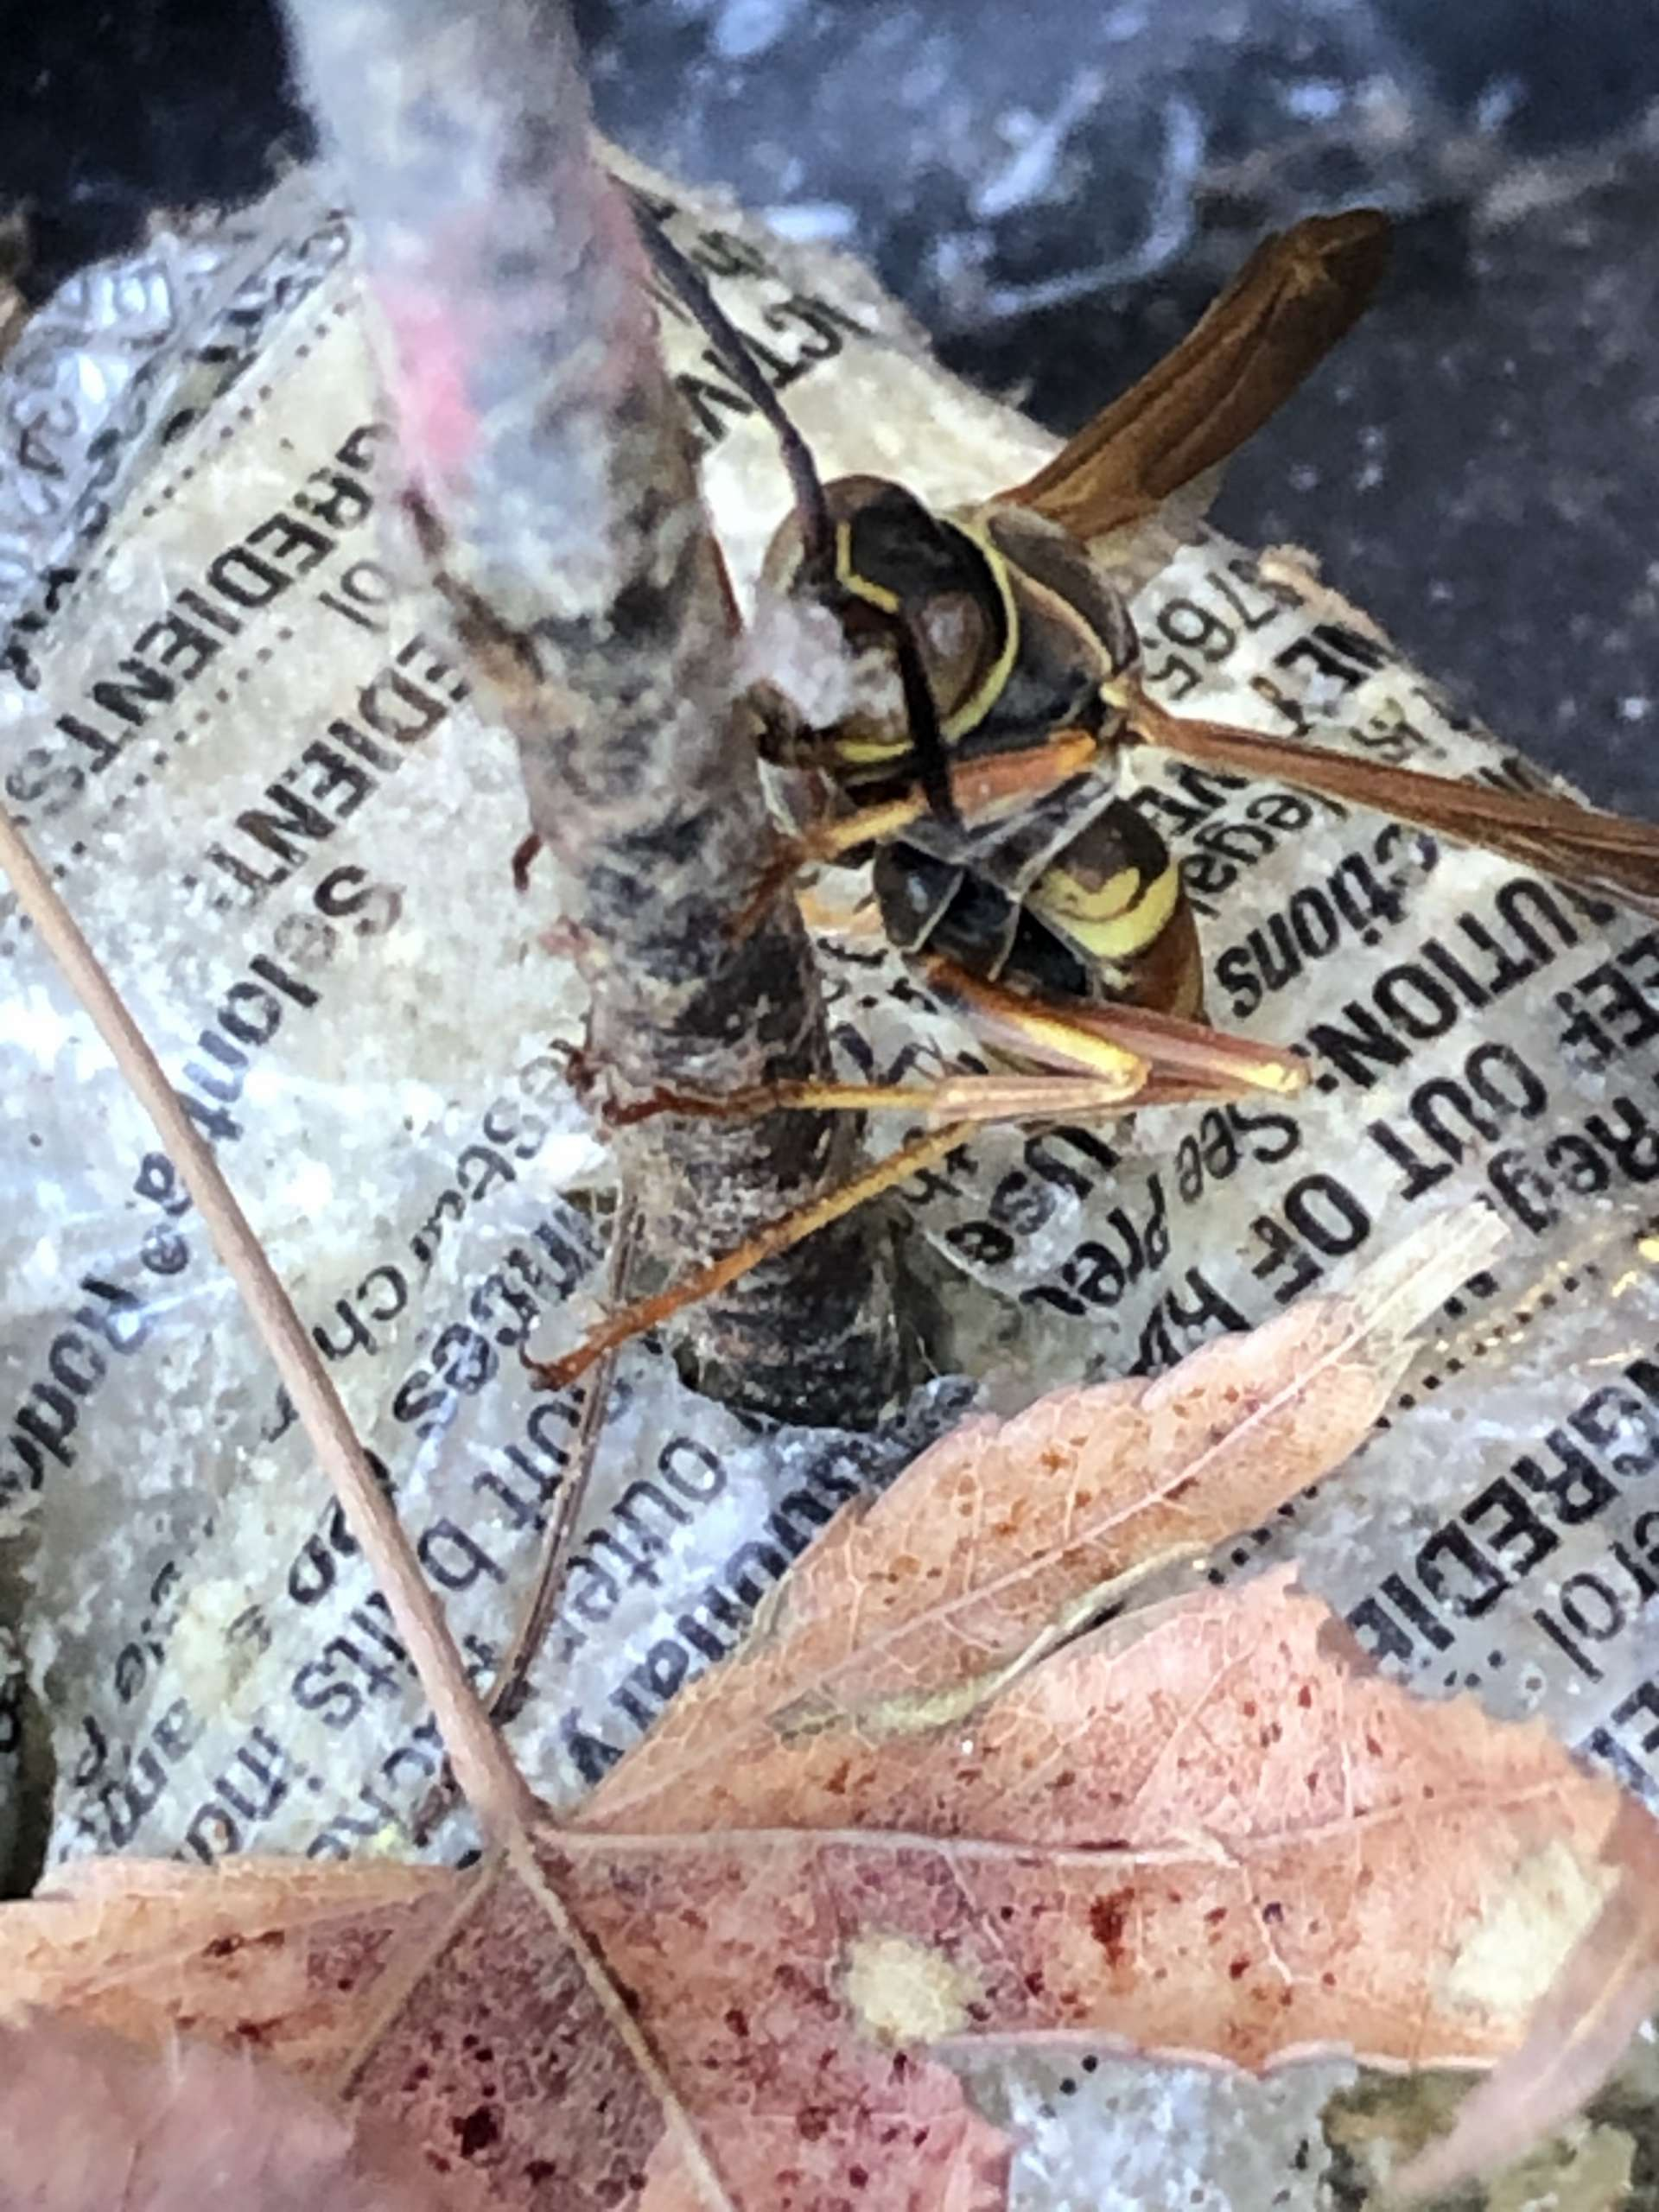 Wasp on a Stick